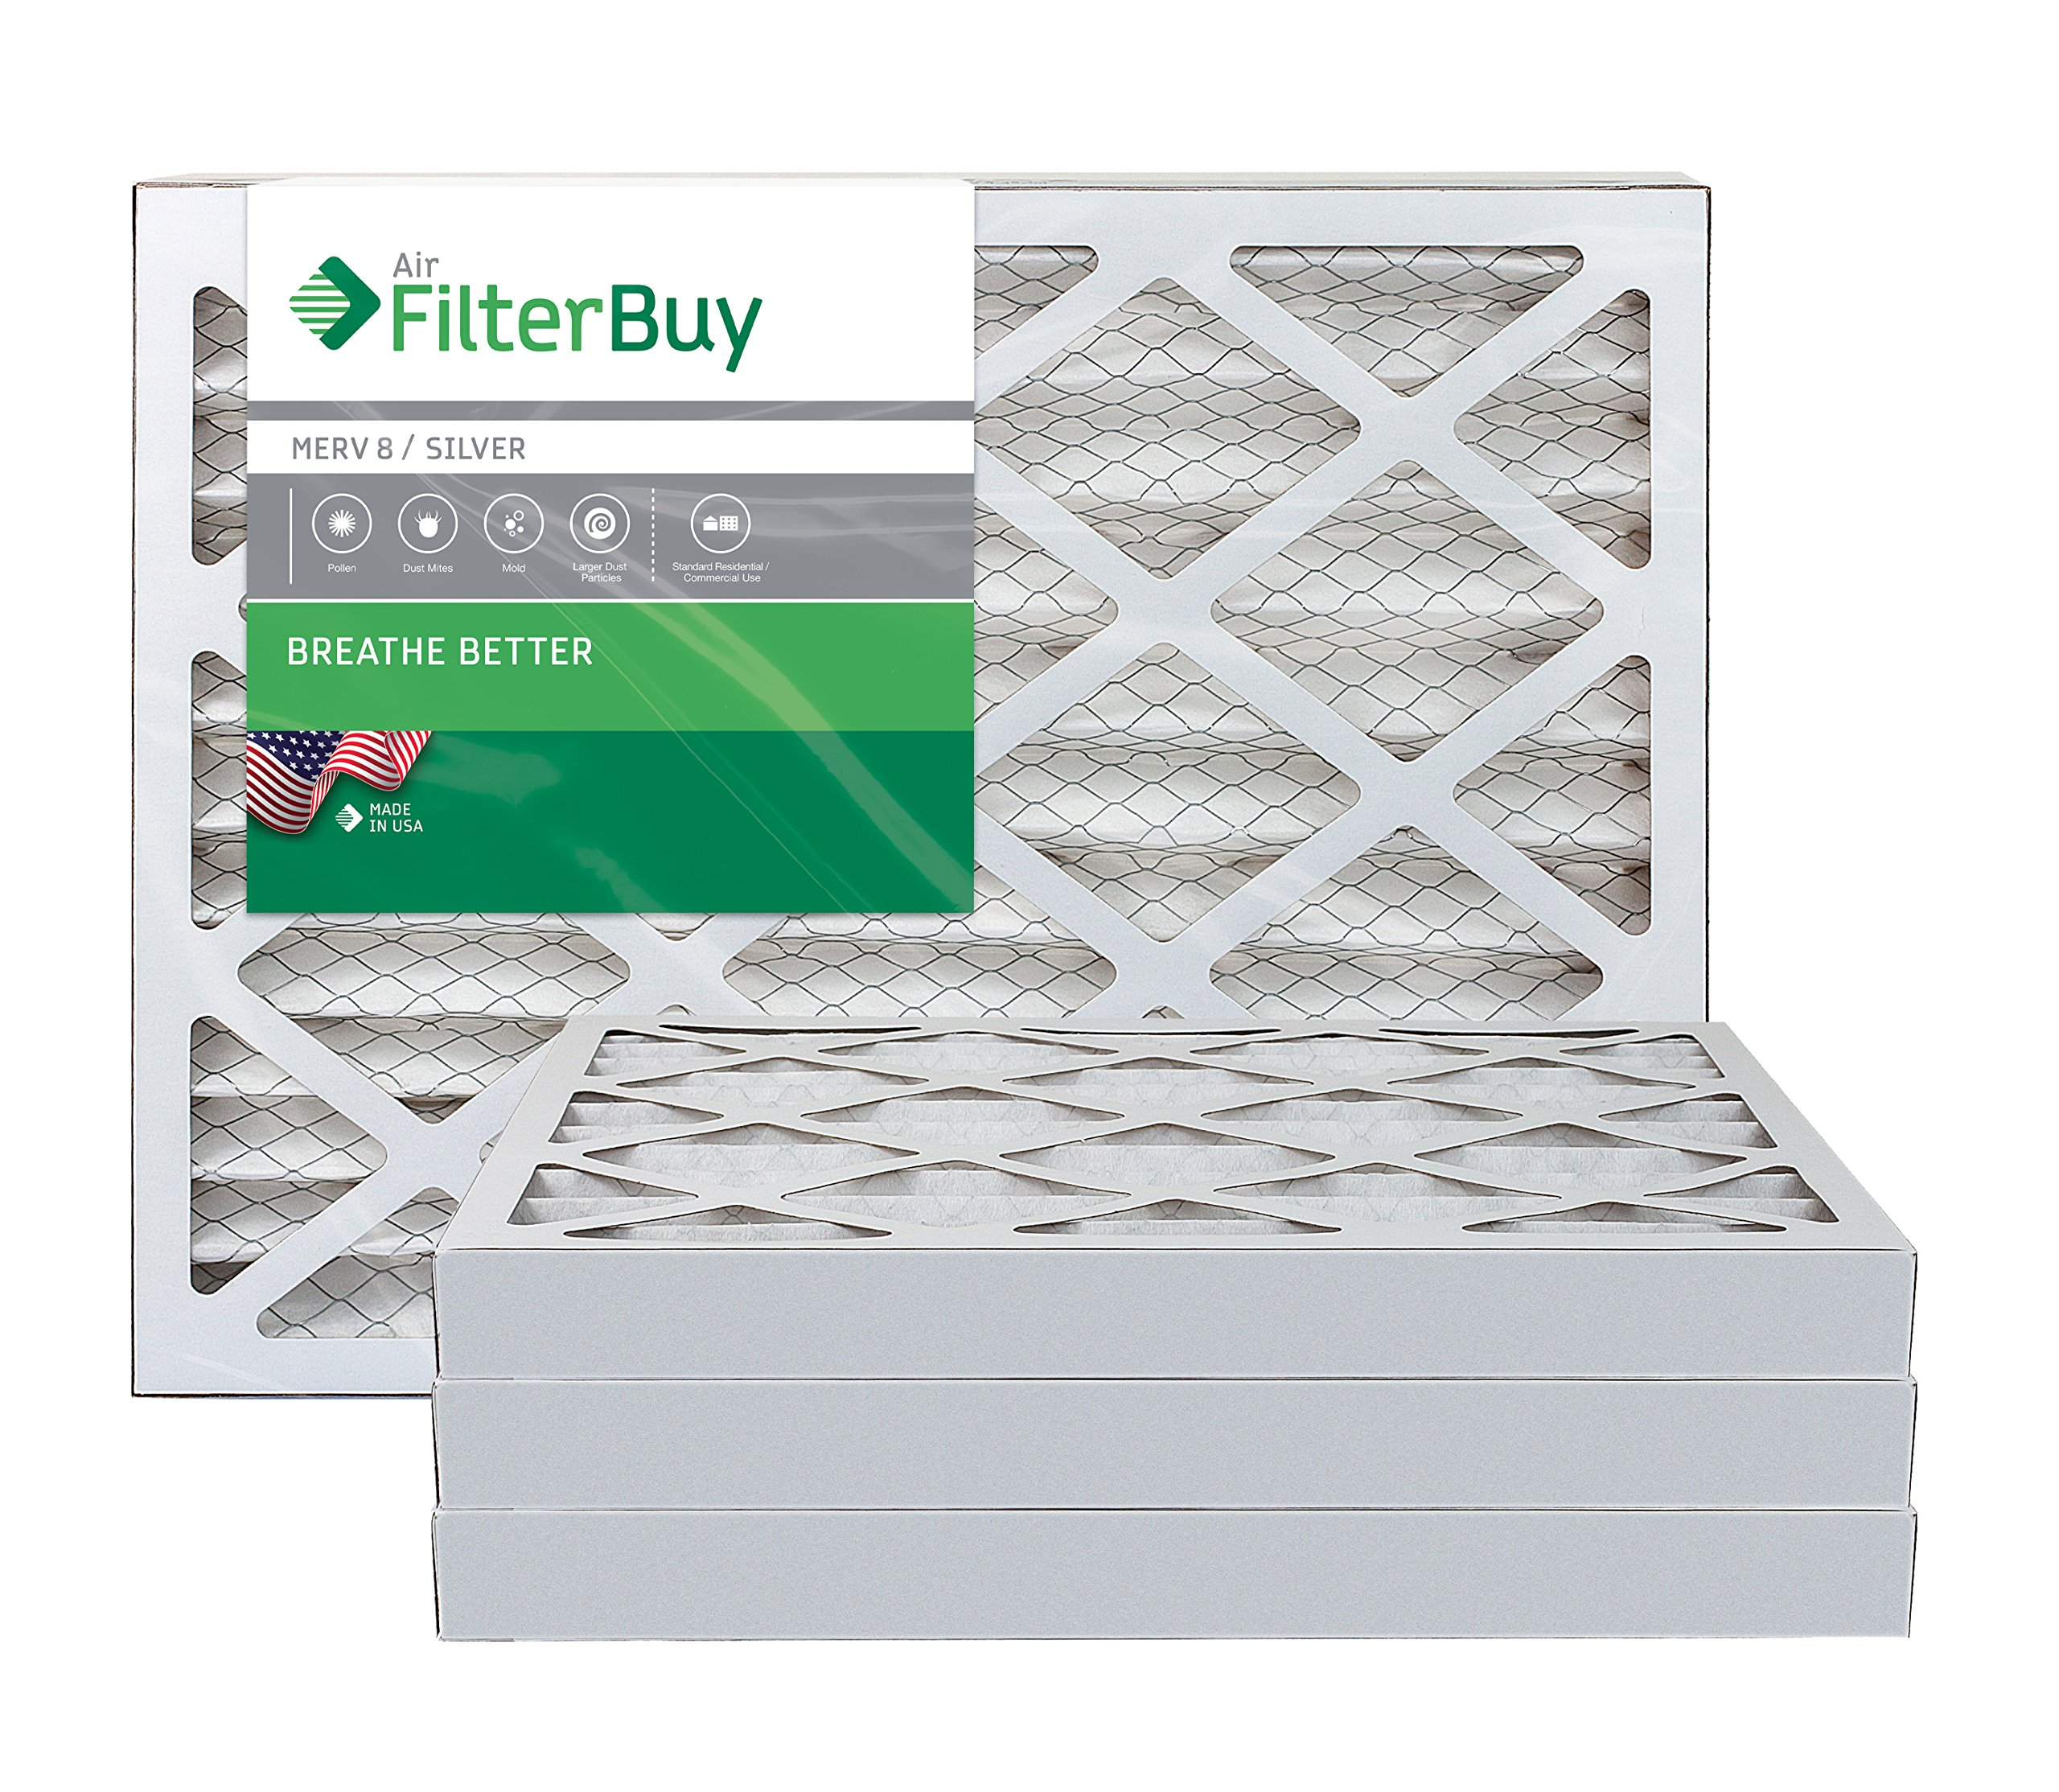 FilterBuy 16x24x2 MERV 8 Pleated AC Furnace Air Filter, (Pack of 4 Filters), 16x24x2 – Silver